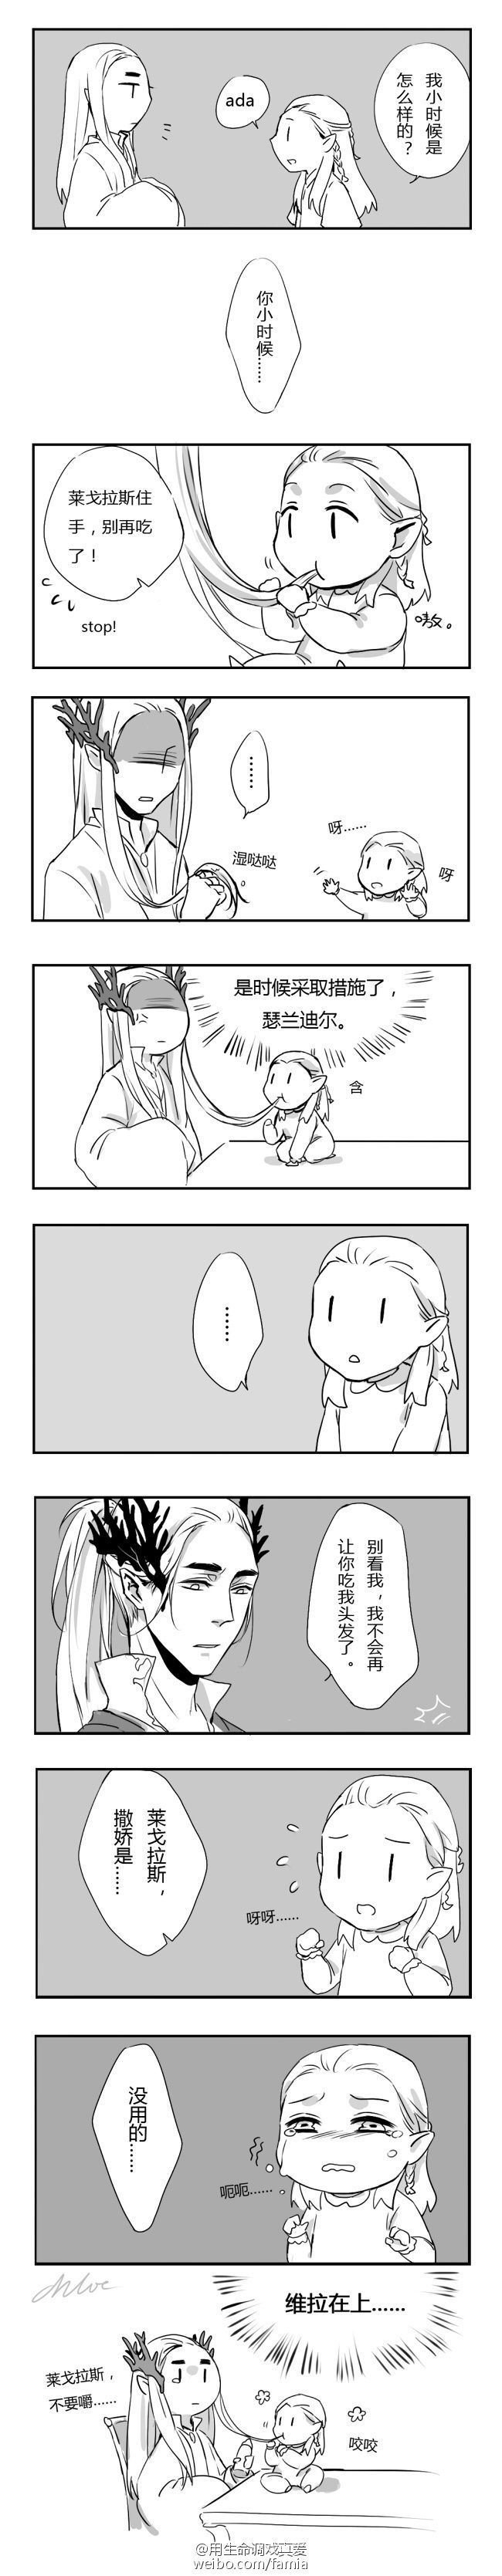 Thranduil and Legolas | Cravings of the Little Prince in 用生命调戏真爱(微博)